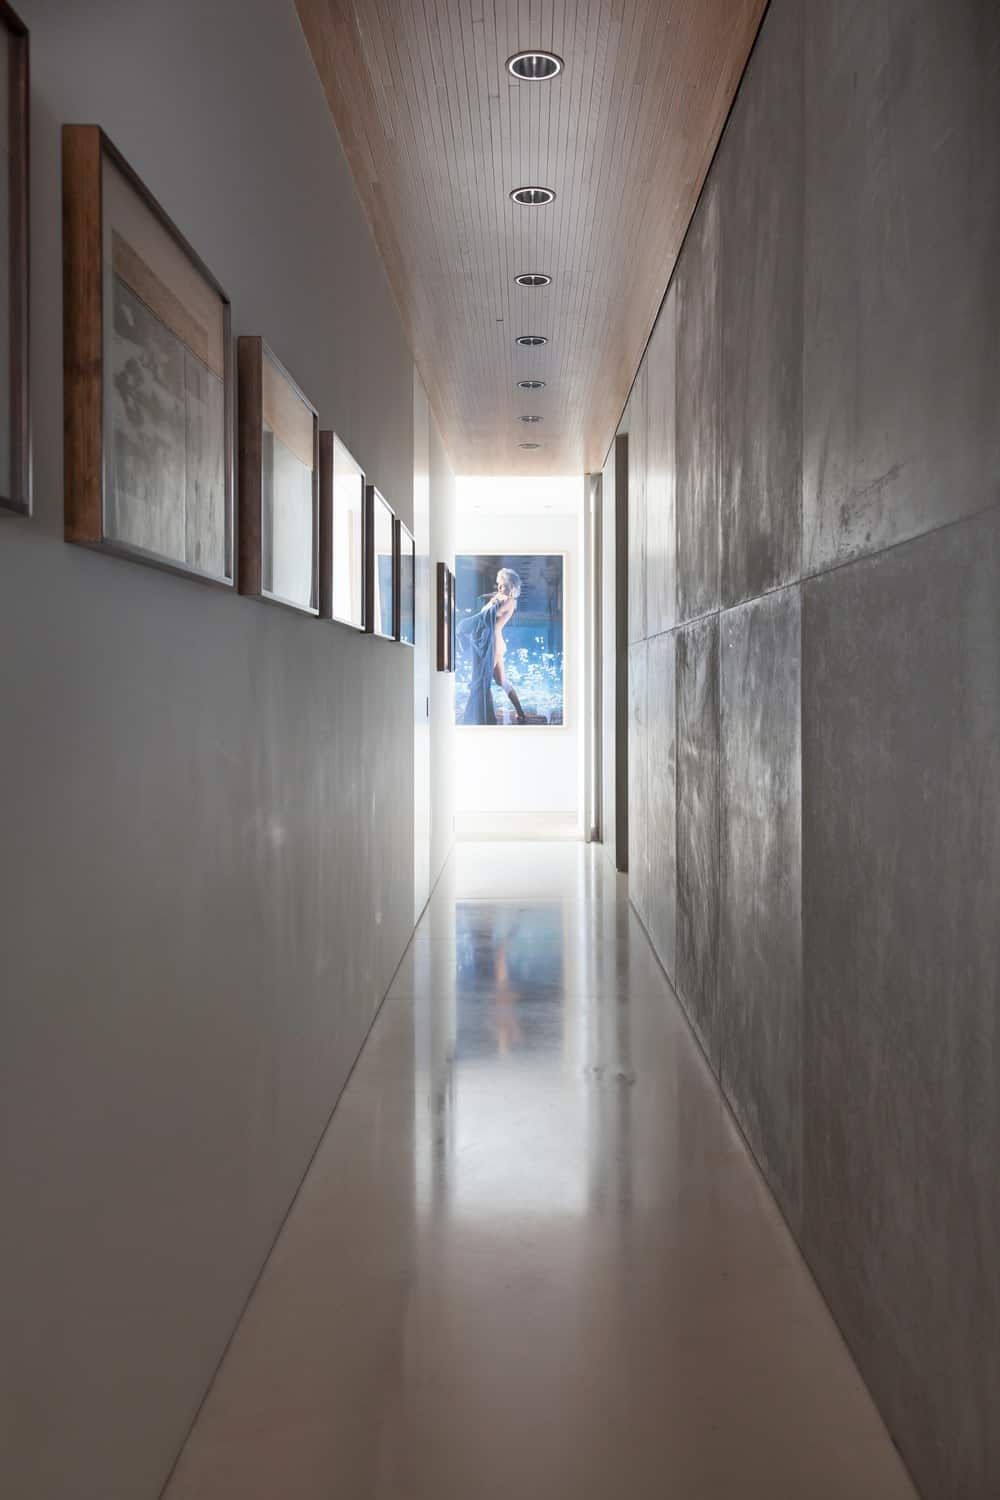 Gray hallway lighted by recessed ceiling lights. Photo Credit: RuiTeixeira